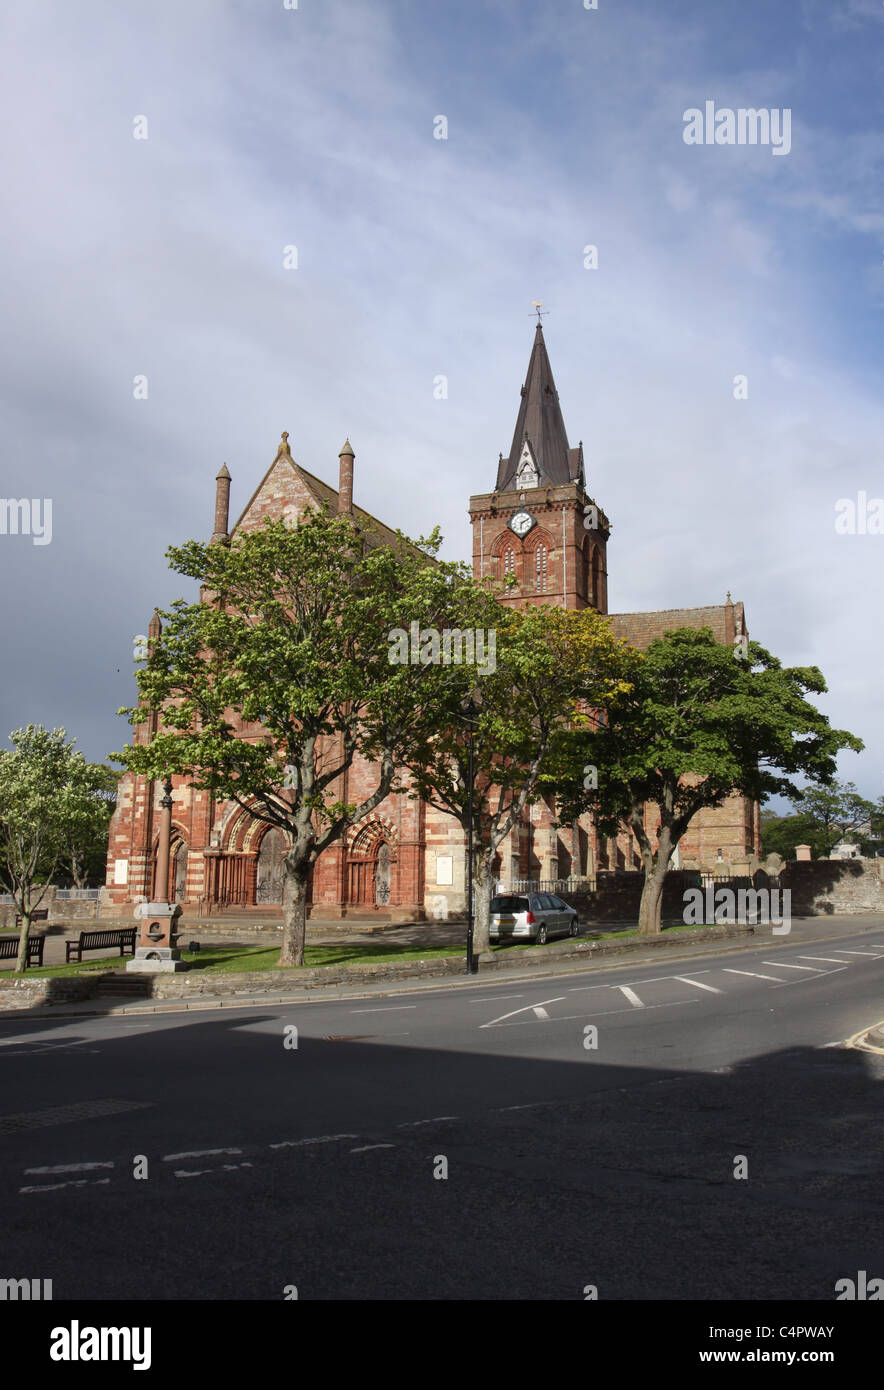 St Magnus Cathedral Kirkwall Orkney Scotland May 2011 - Stock Image